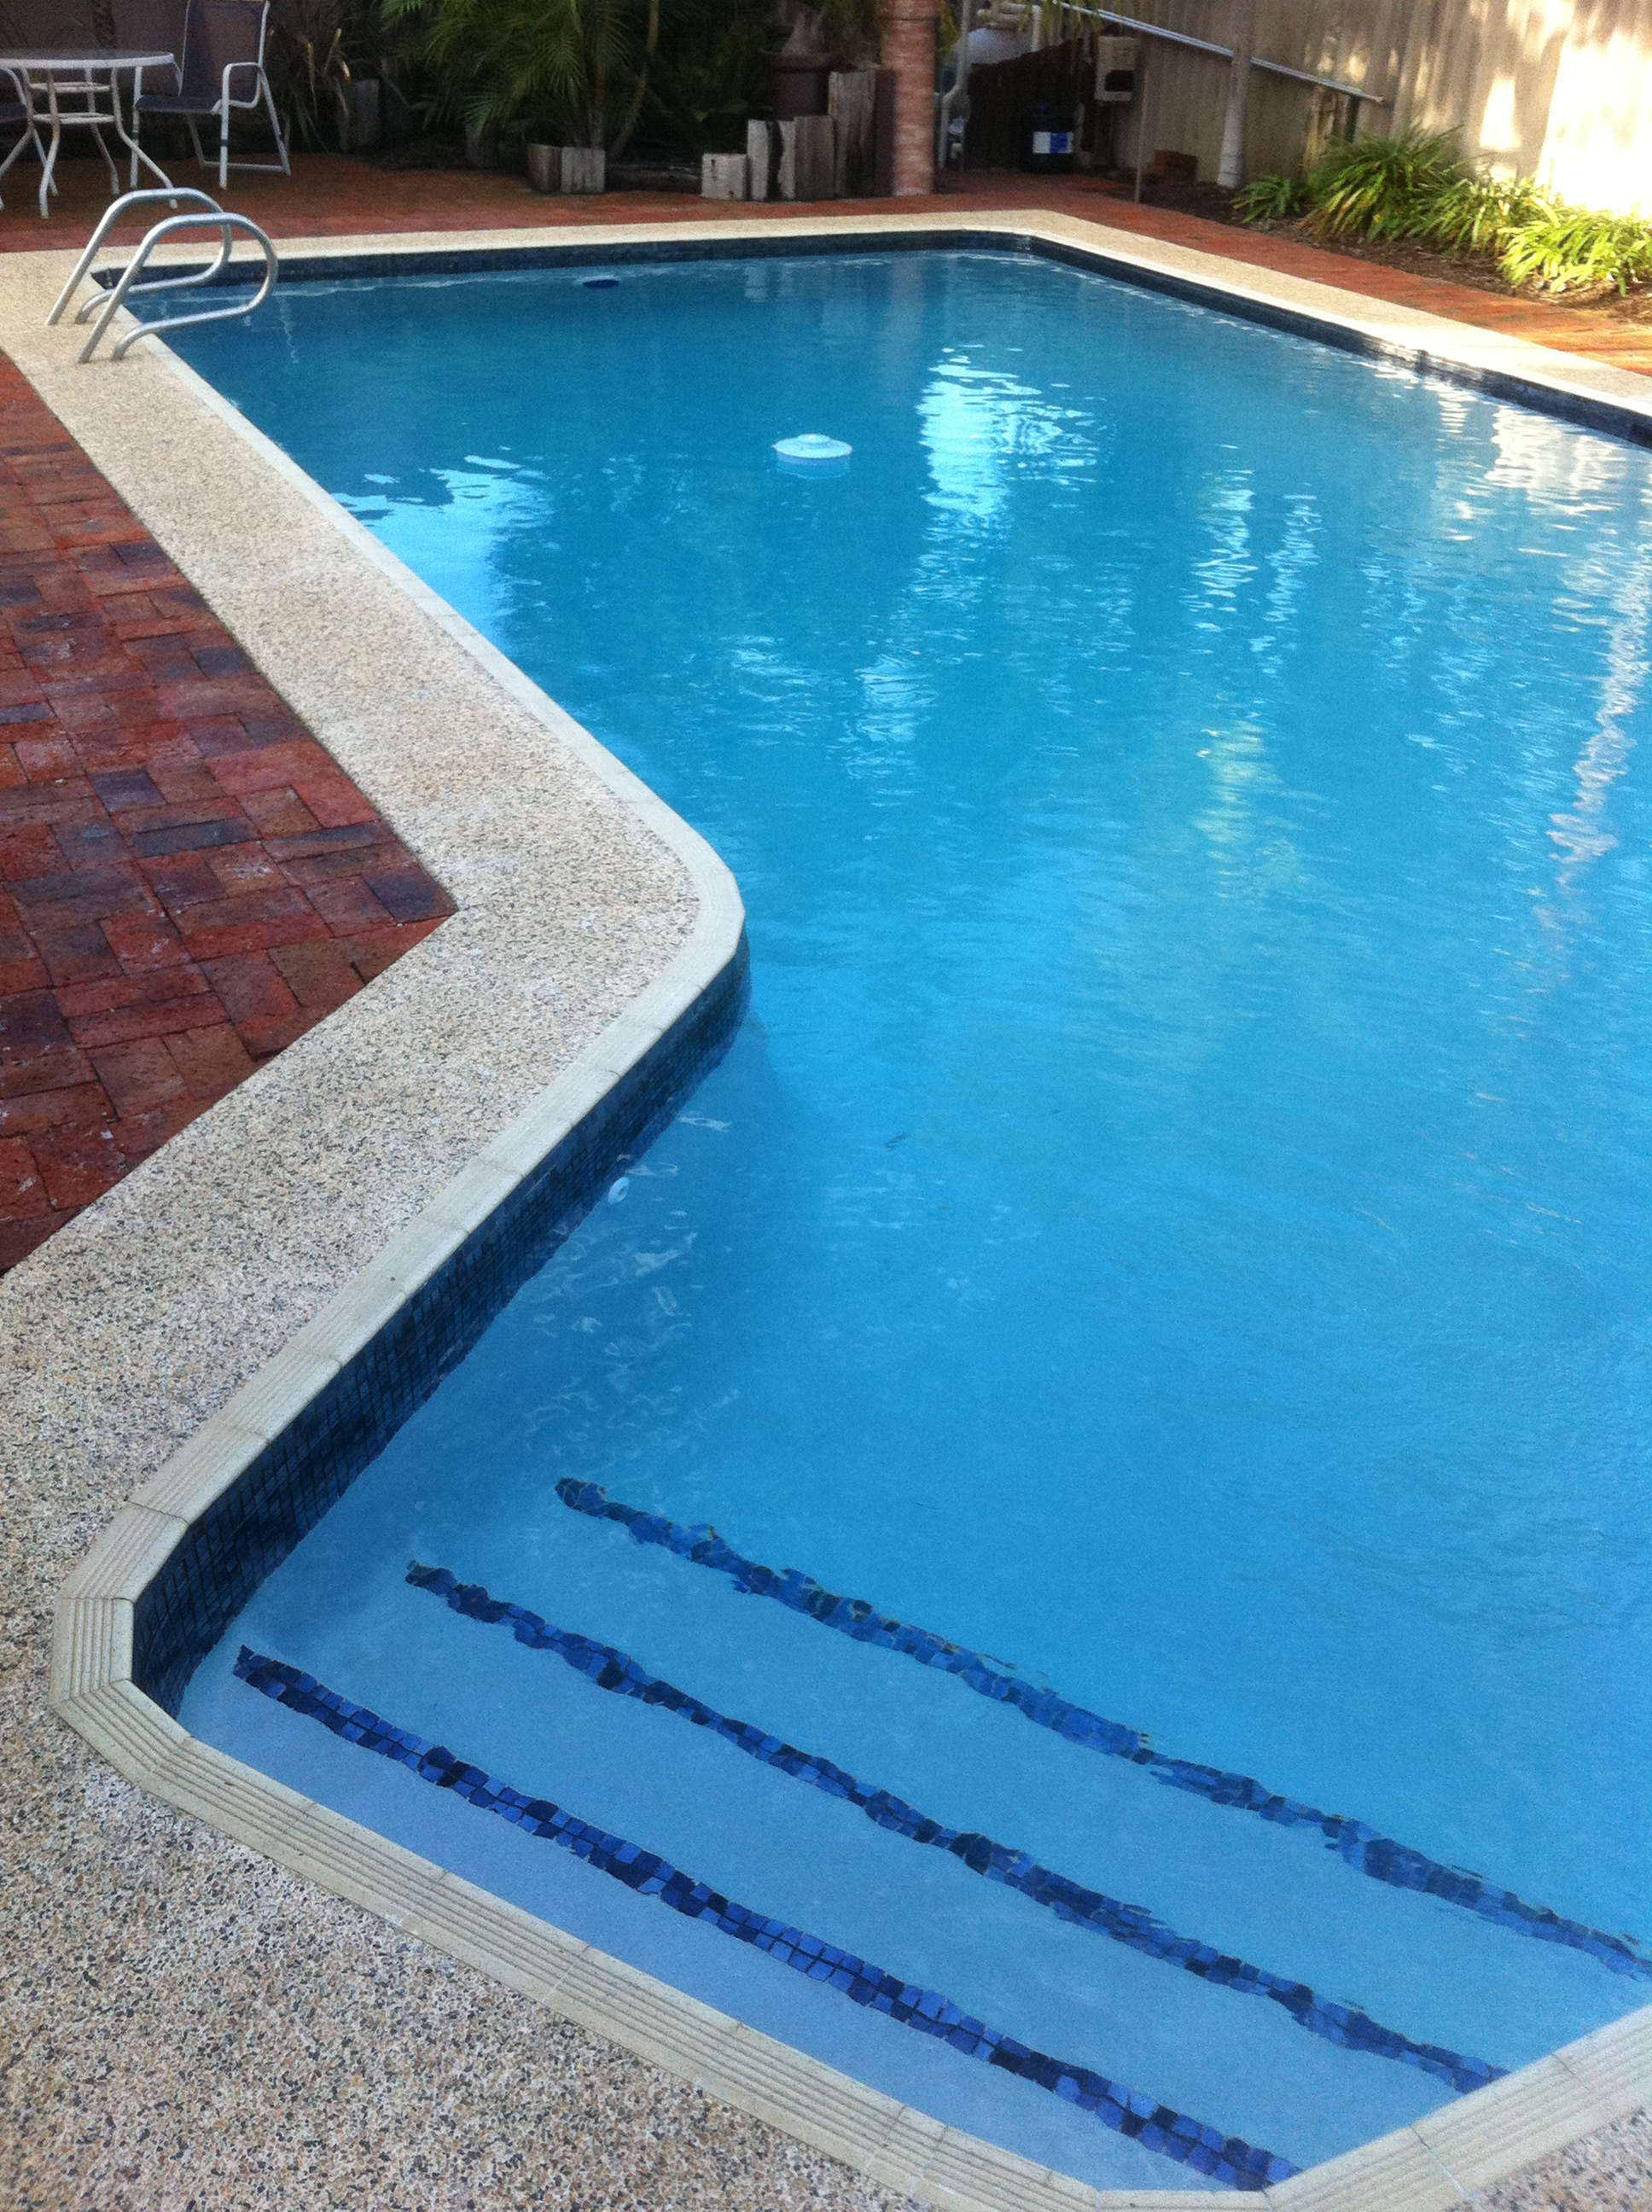 Waterline Tile Replacement Pool Repairs Perth Wa